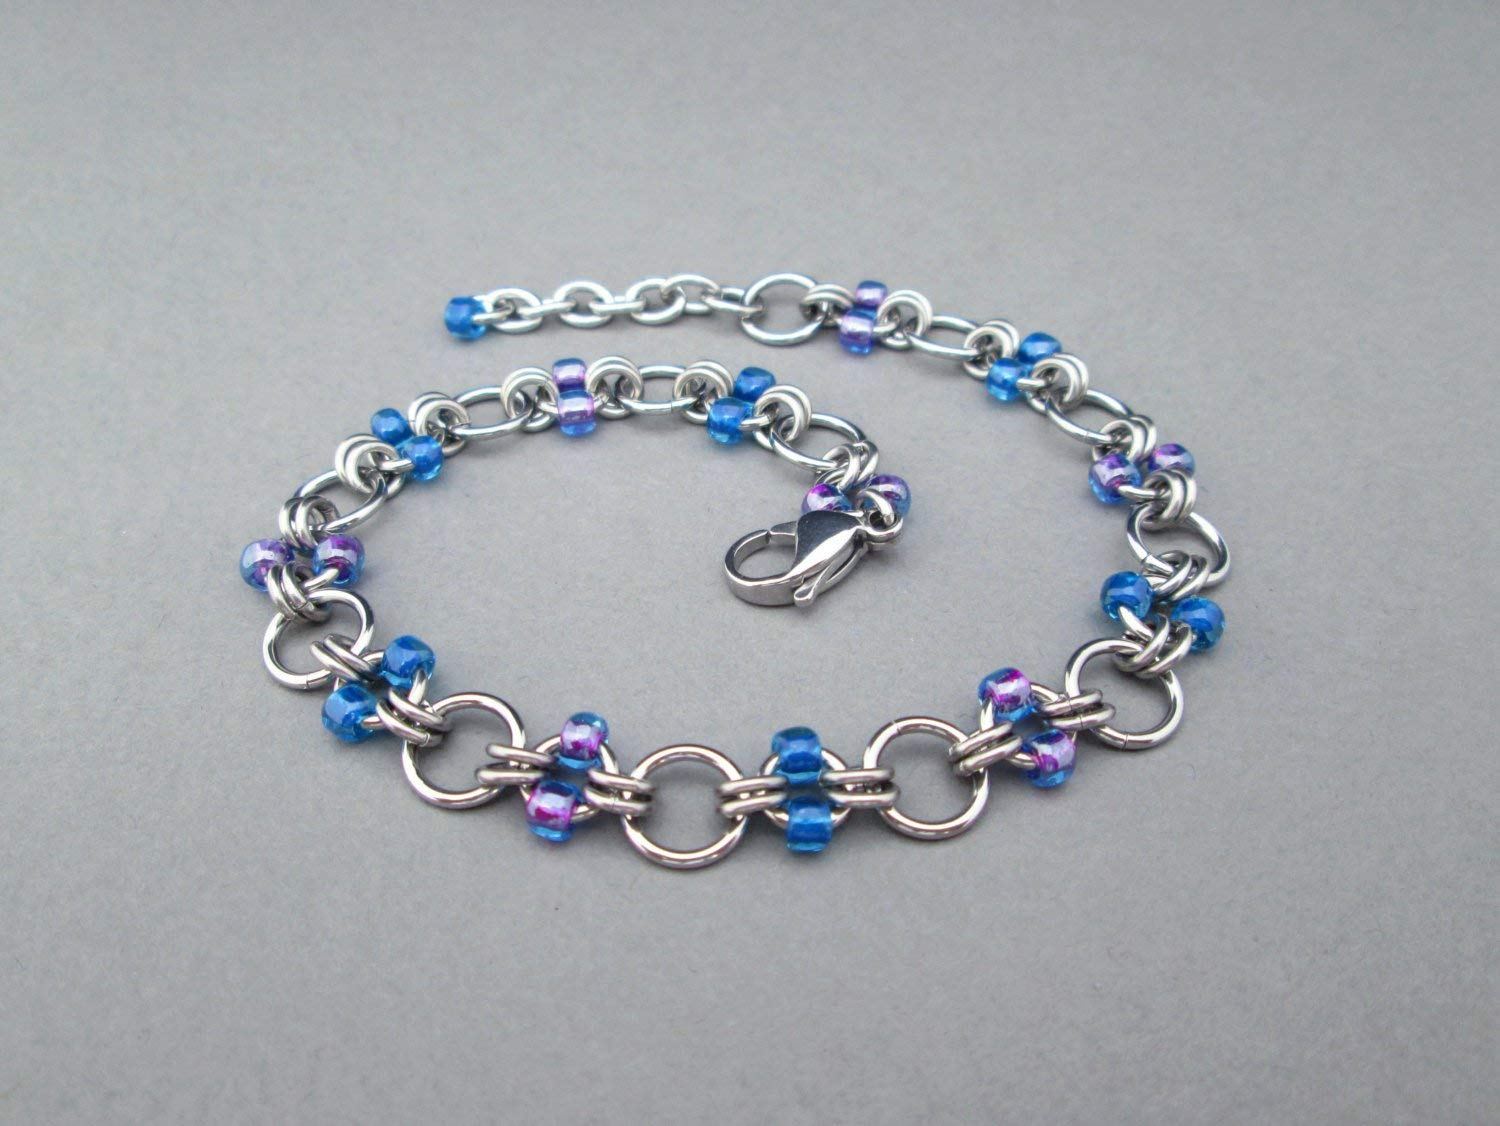 Beaded Anklet, Chainmaille Jewelry, Stainless Steel Jewelry, Chain Anklet Chainmaille Anklet Beaded Ankle Bracelet Blue Anklet Purple Anklet